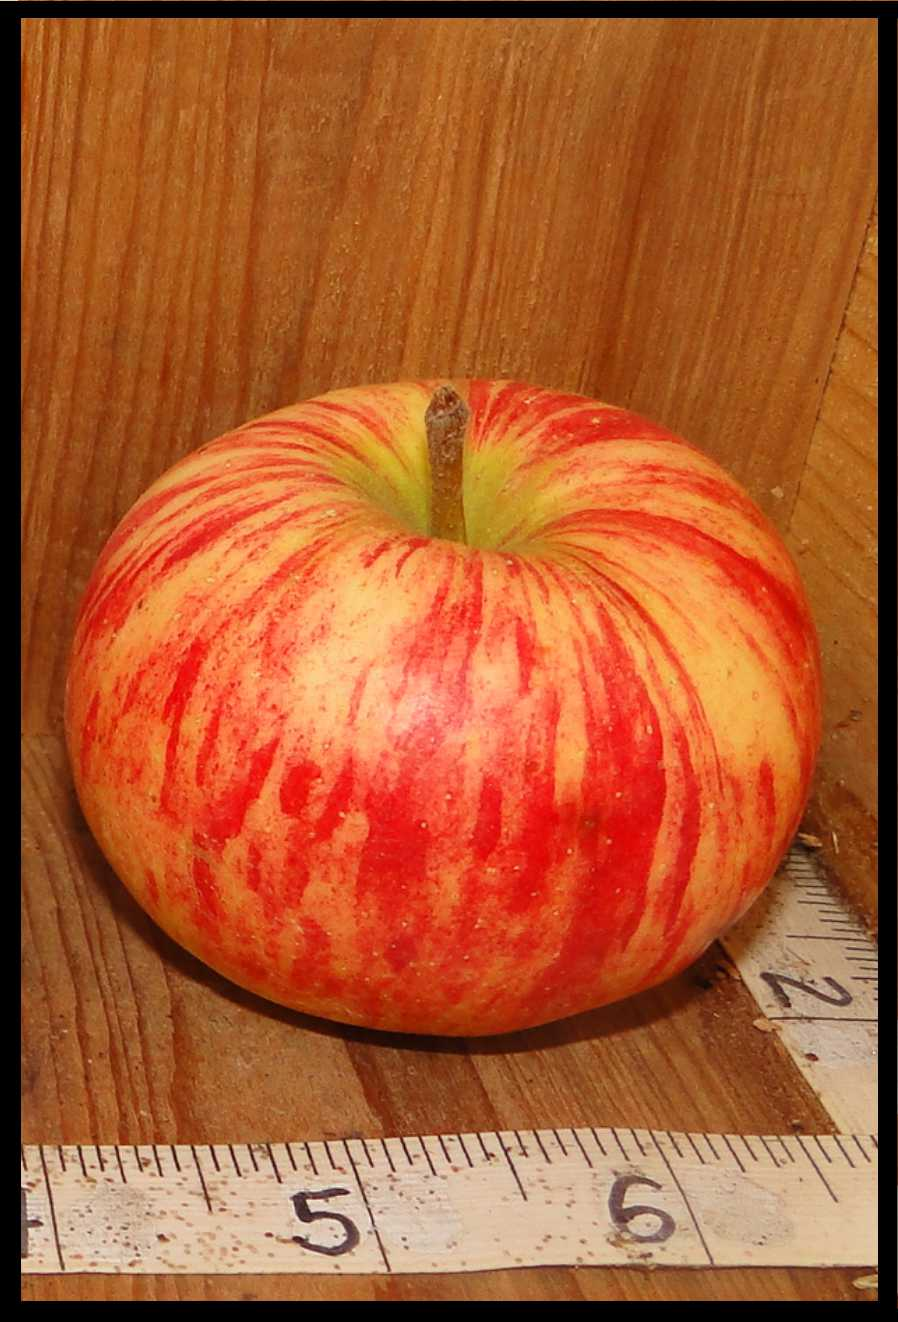 red and yellow striped apple